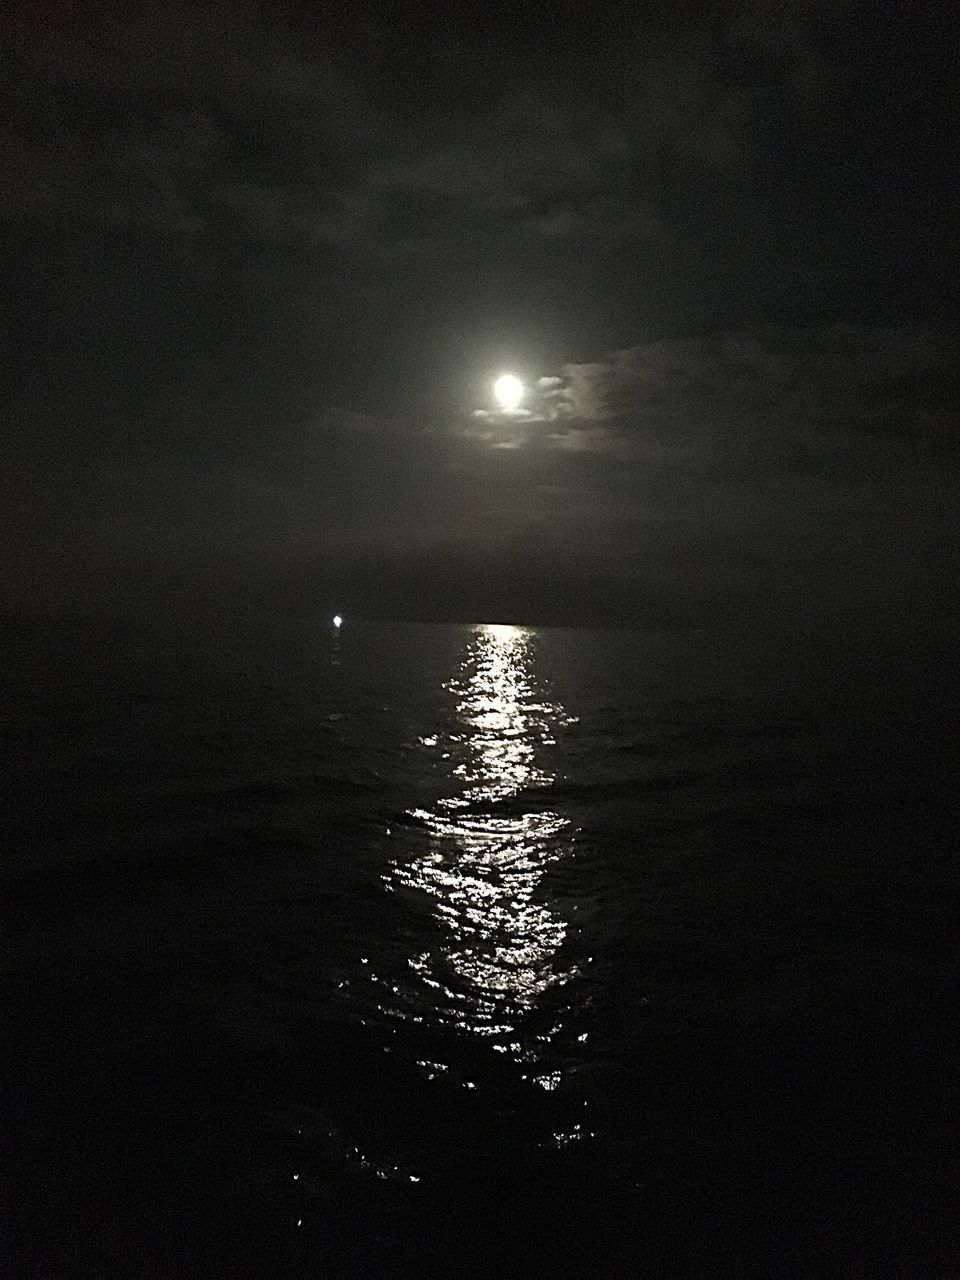 tranquility, sea, nature, water, tranquil scene, scenics, beauty in nature, night, no people, moon, outdoors, sky, horizon over water